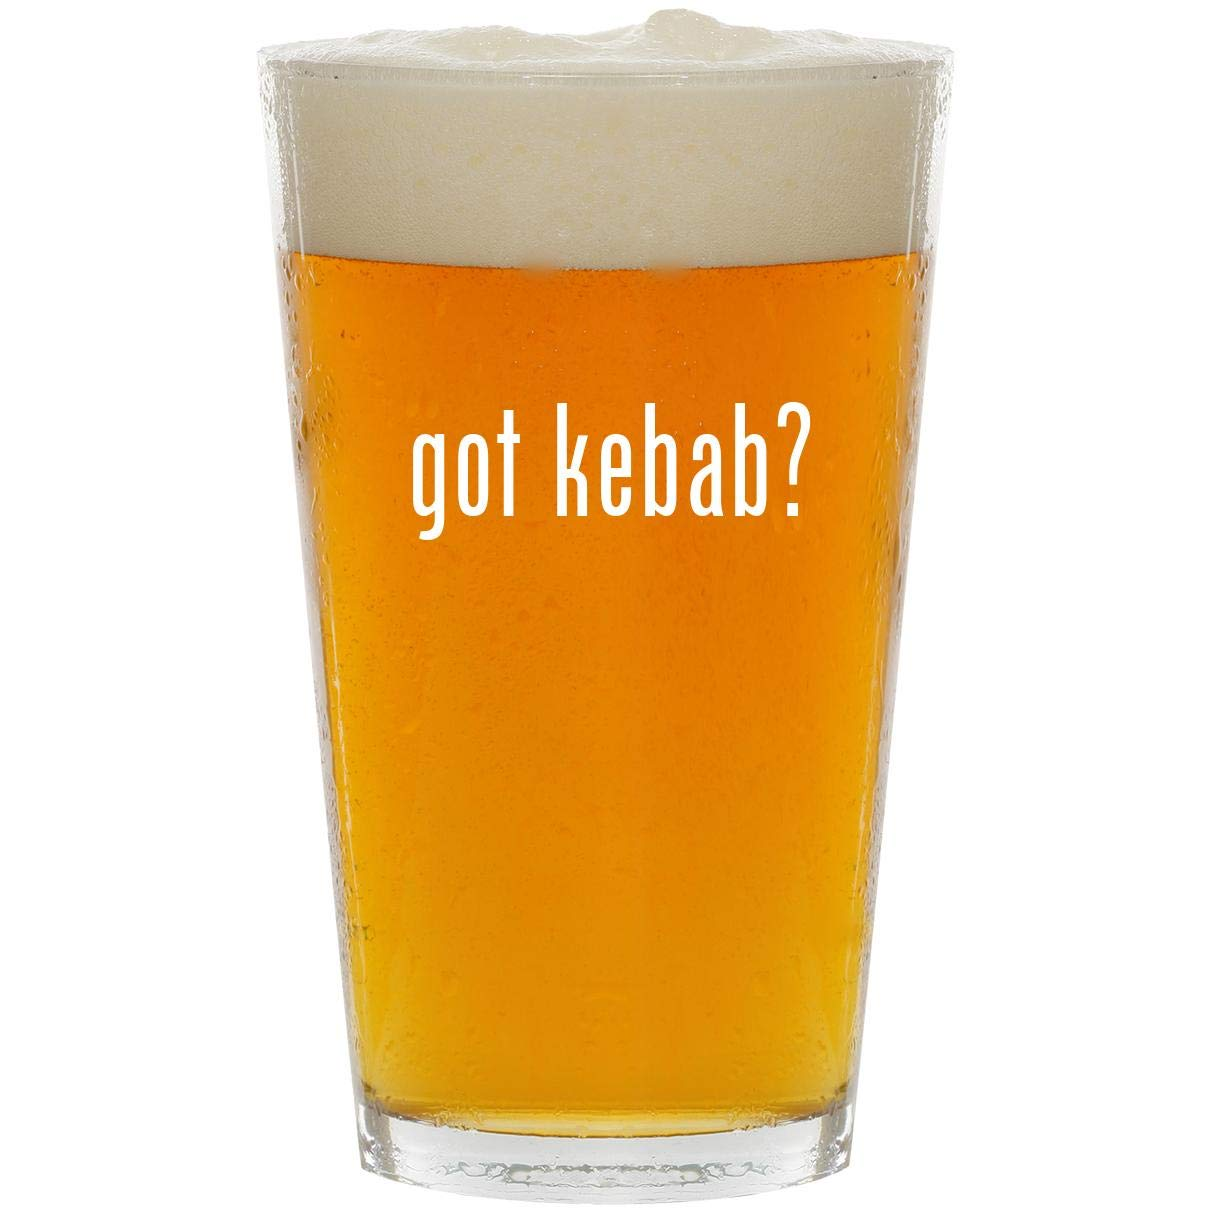 got kebab? - Glass 16oz Beer Pint